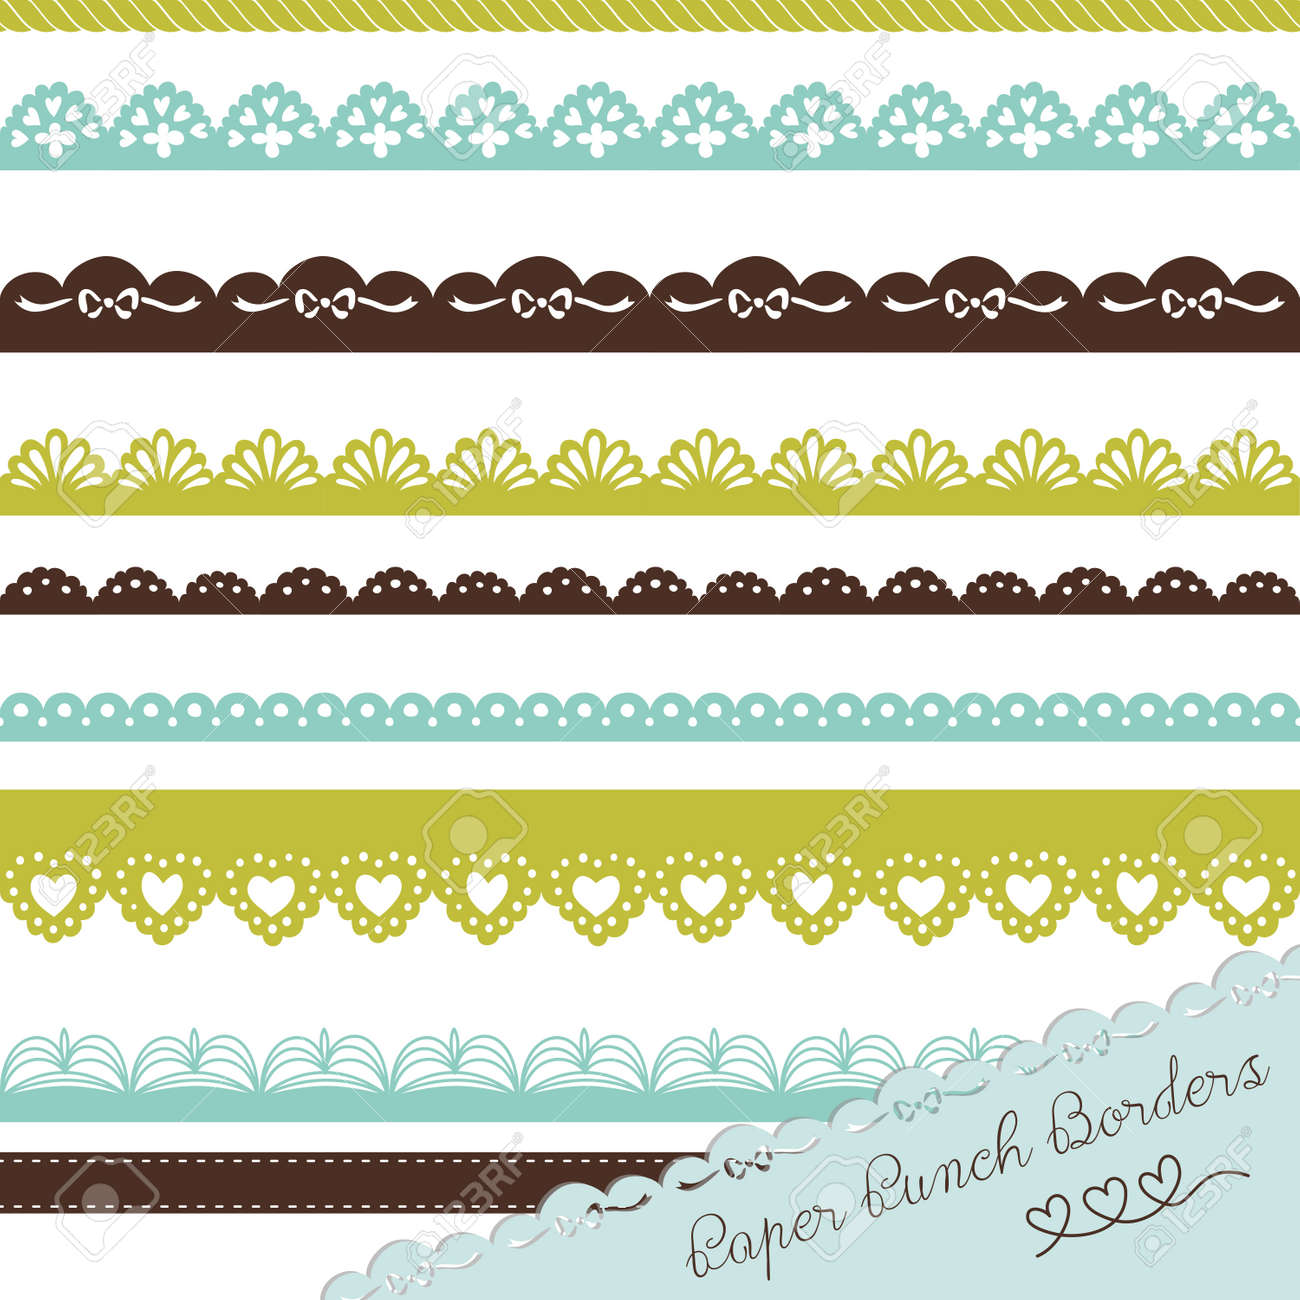 Set of hand-drawn Lace Paper Punch Borders Stock Vector - 16681045